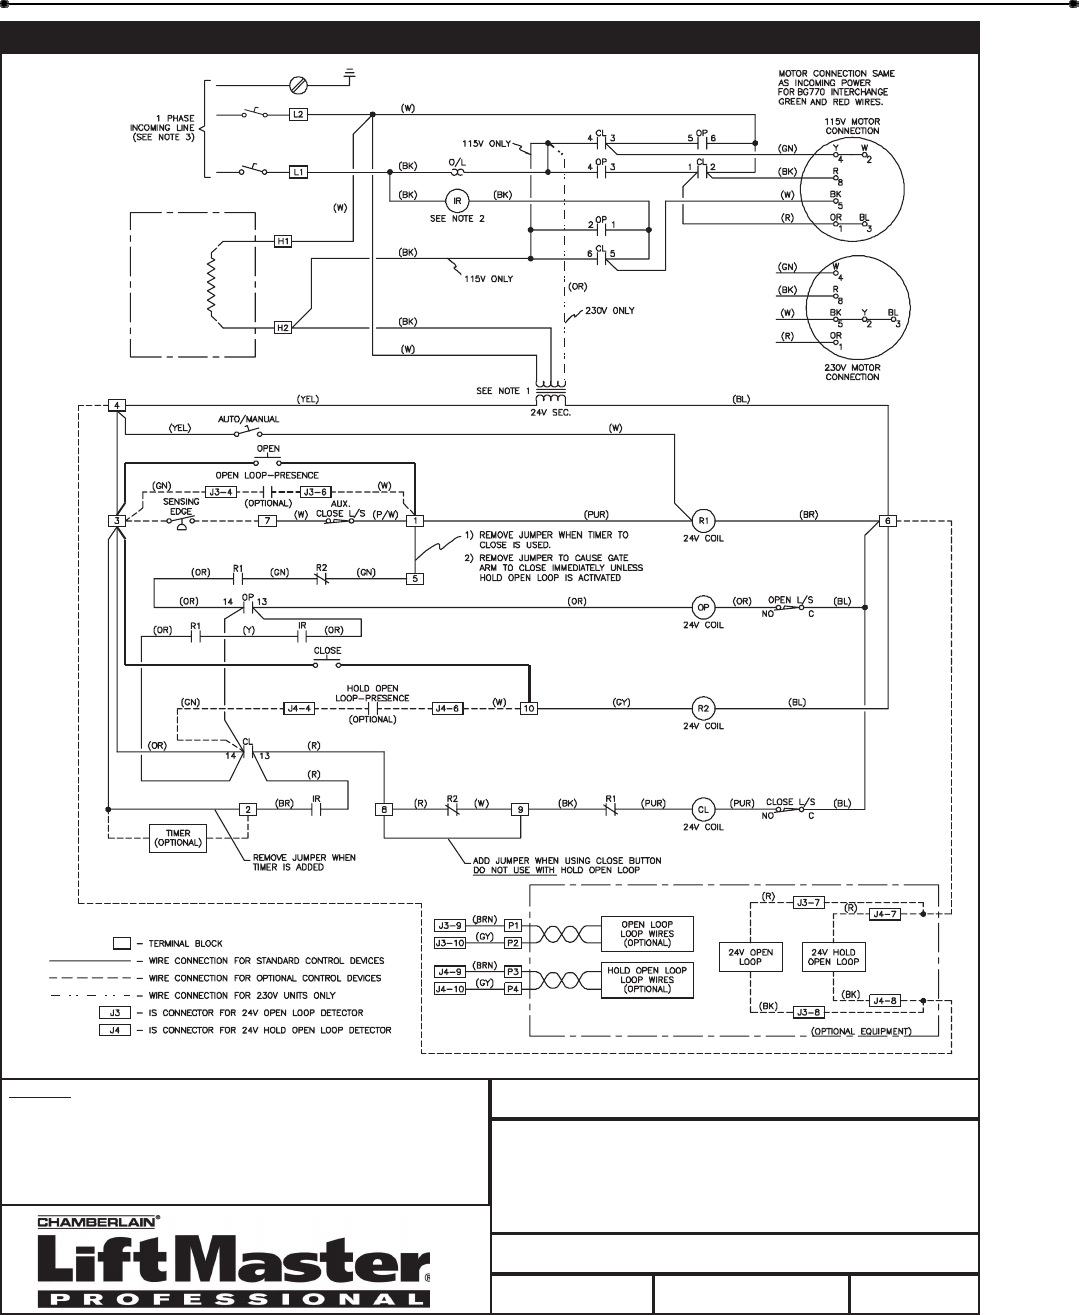 a31834b7 0f9e 4ec5 b754 583157ce4575 bg1f g1014 wiring diagram,wiring \u2022 limouge co  at panicattacktreatment.co